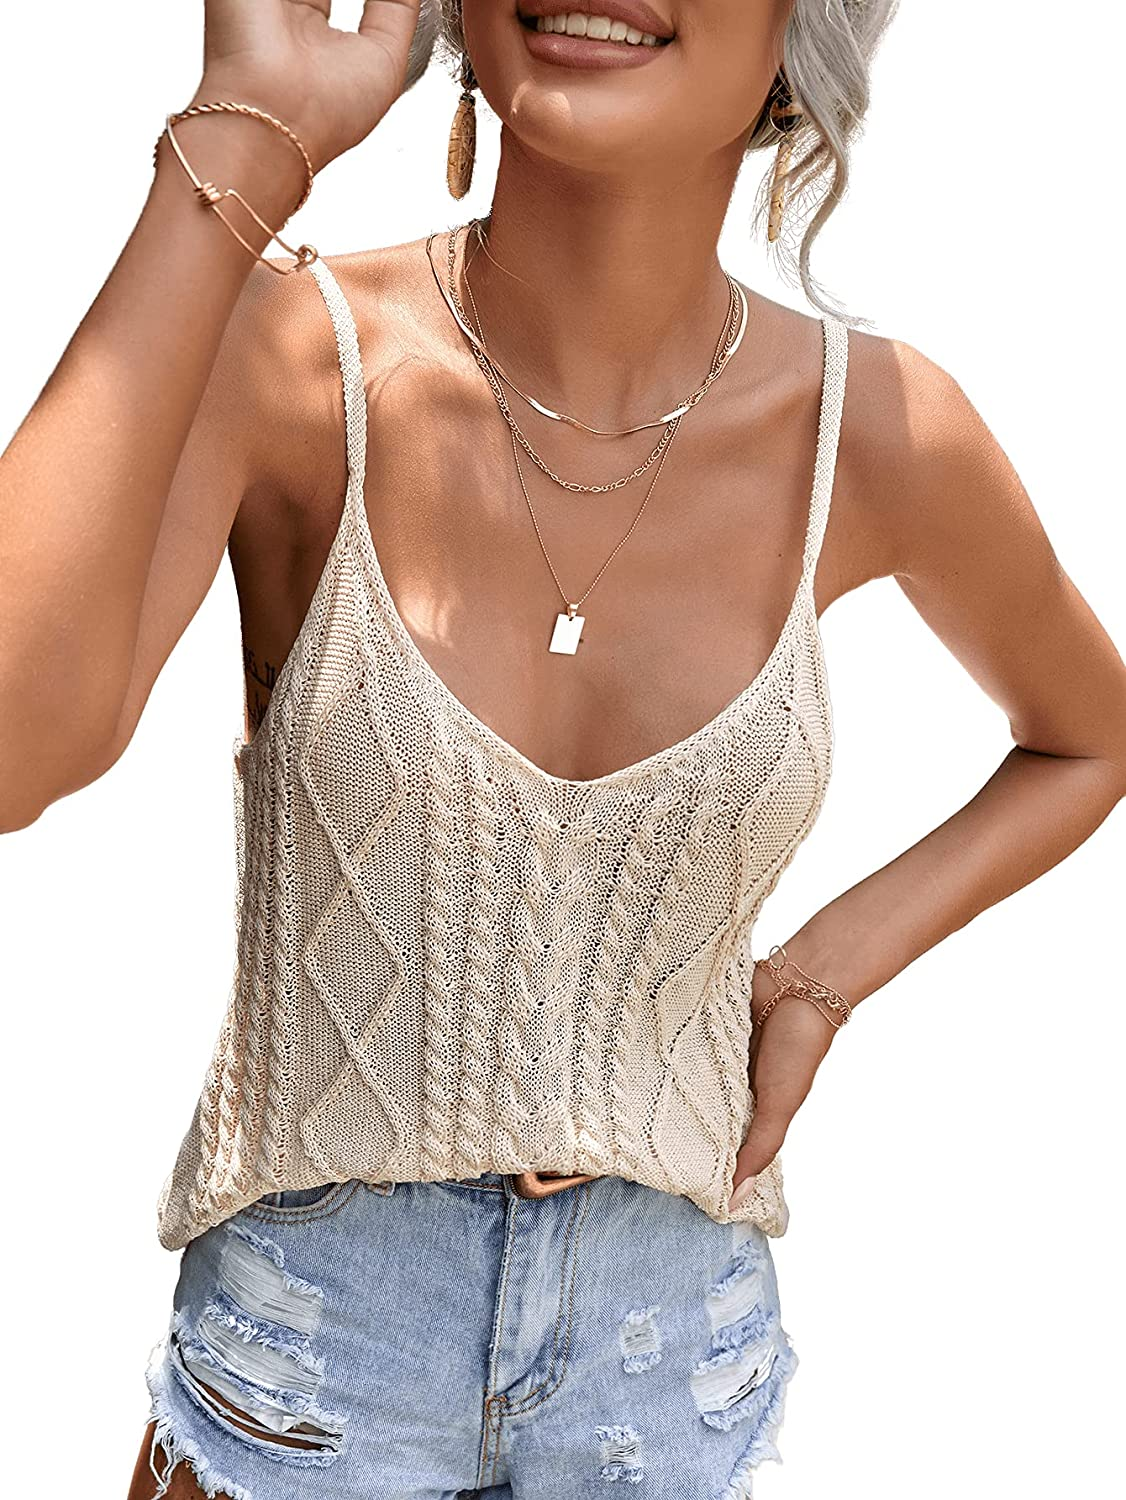 Milumia Women's Argyle Cable Knit Cami Tops Backless Spaghetti Strap Sweater Camisole